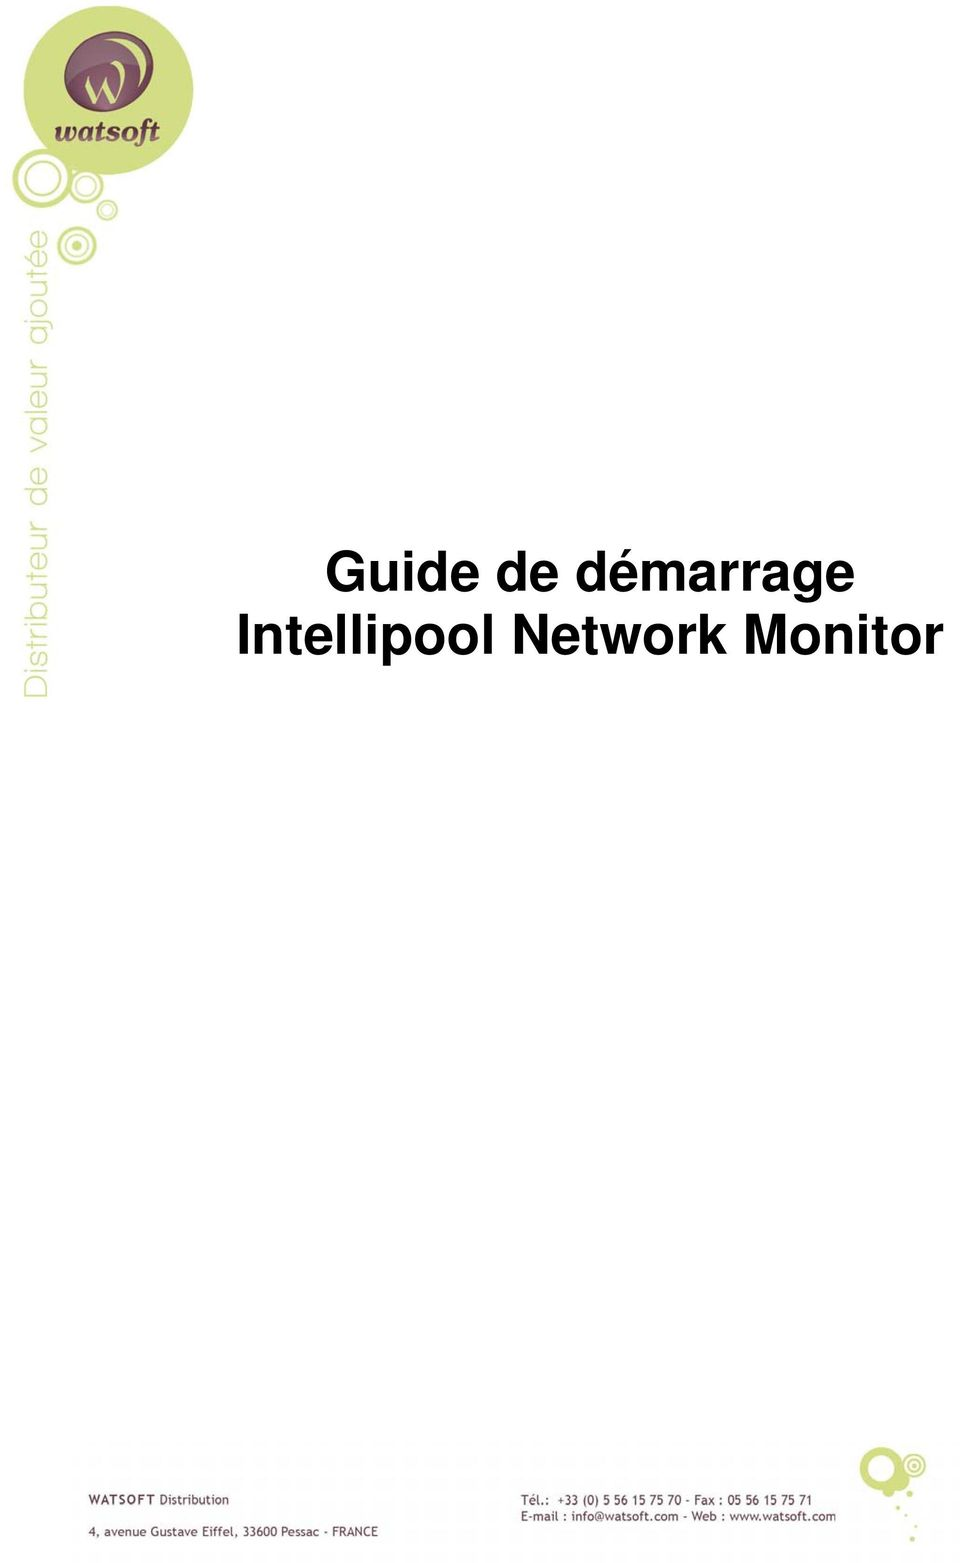 Intellipool